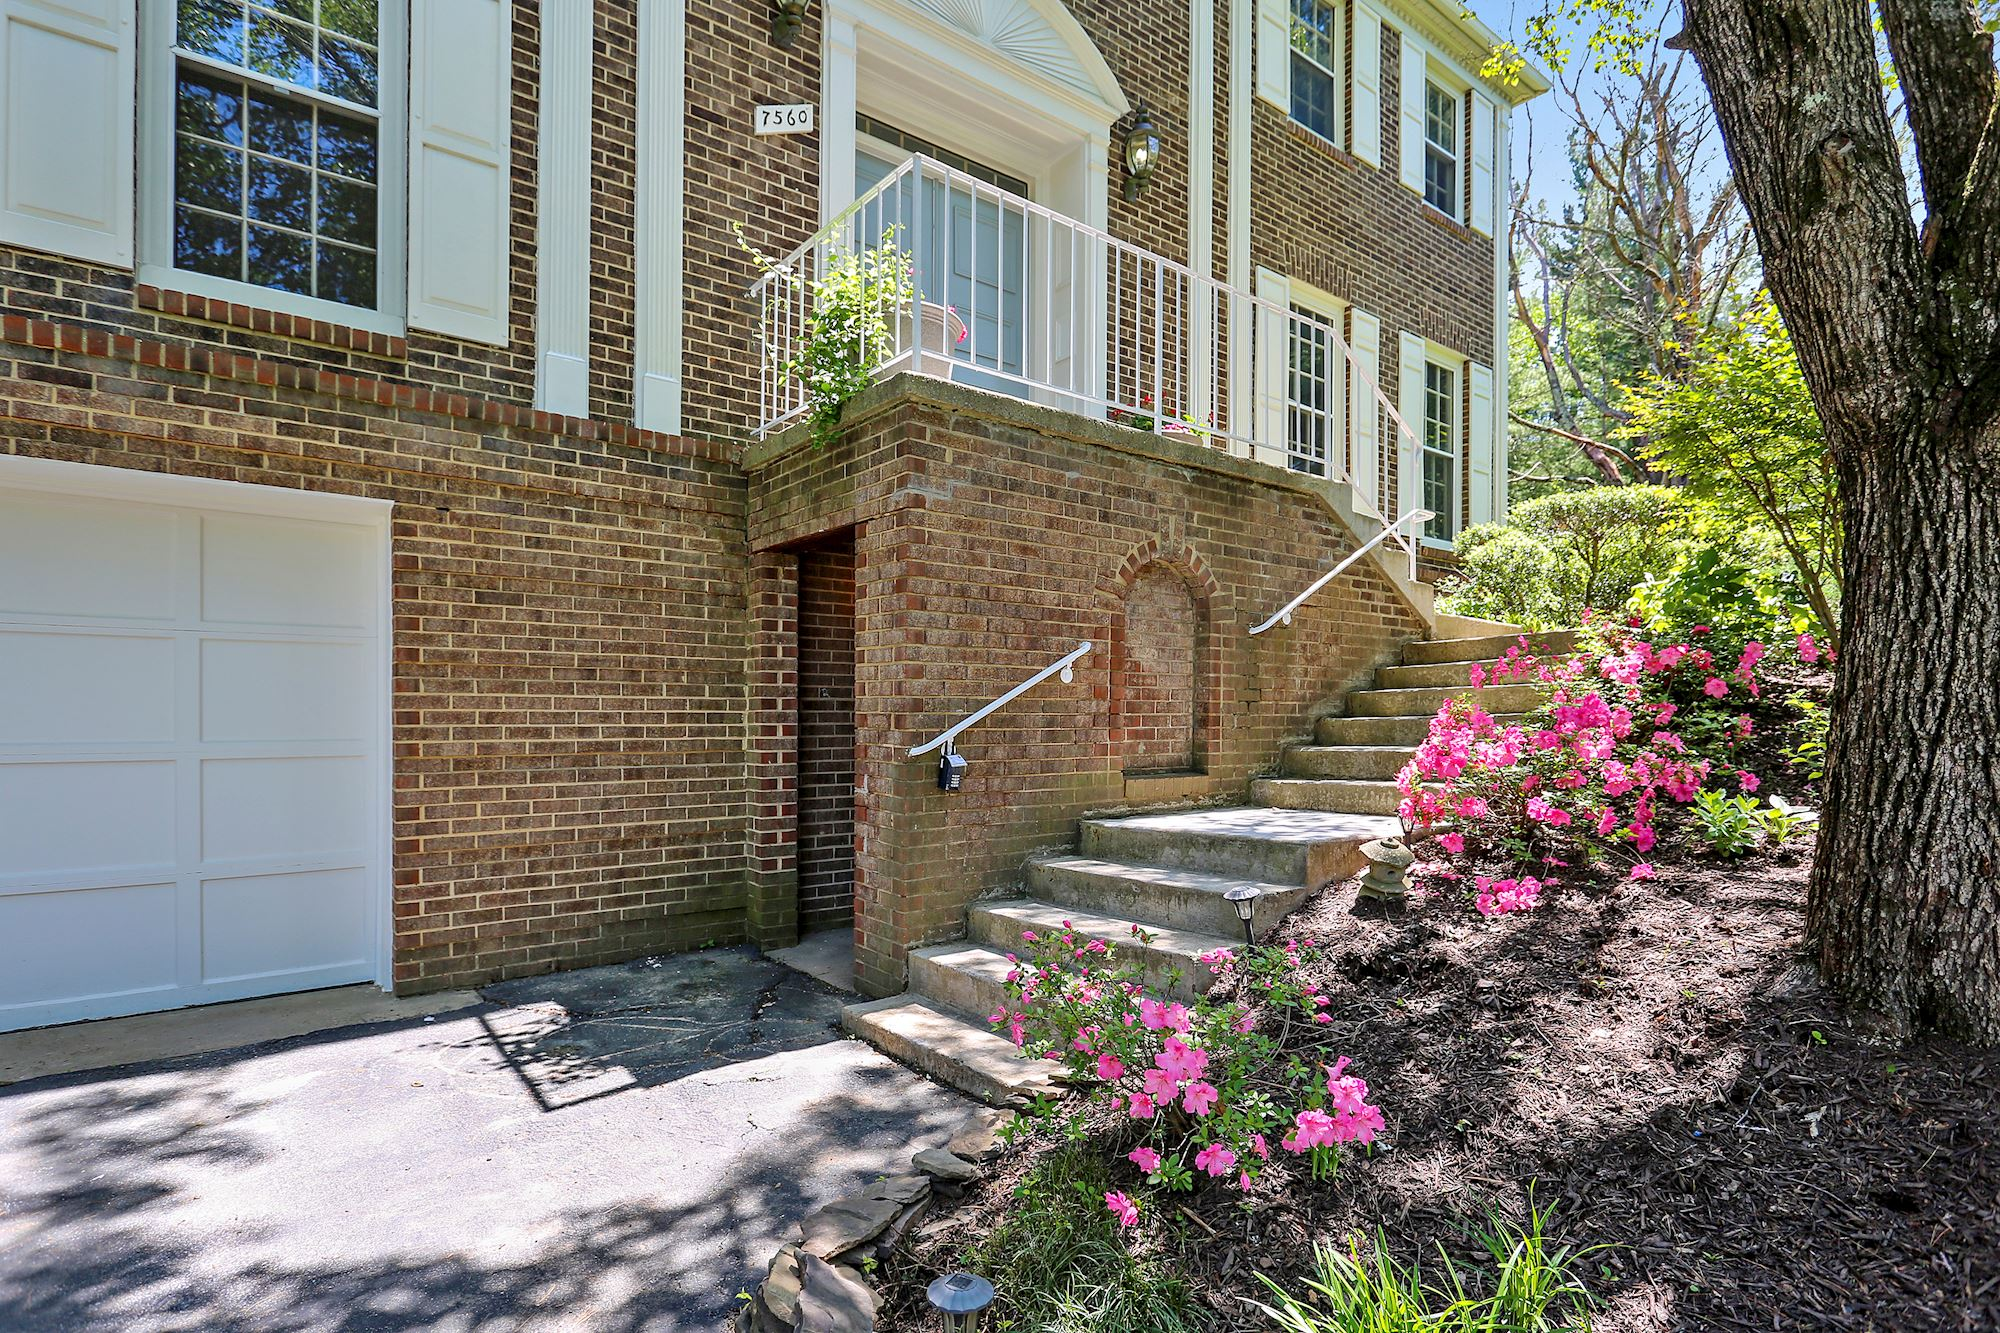 7560 PEPPERELL DR, BETHESDA, MD 20817